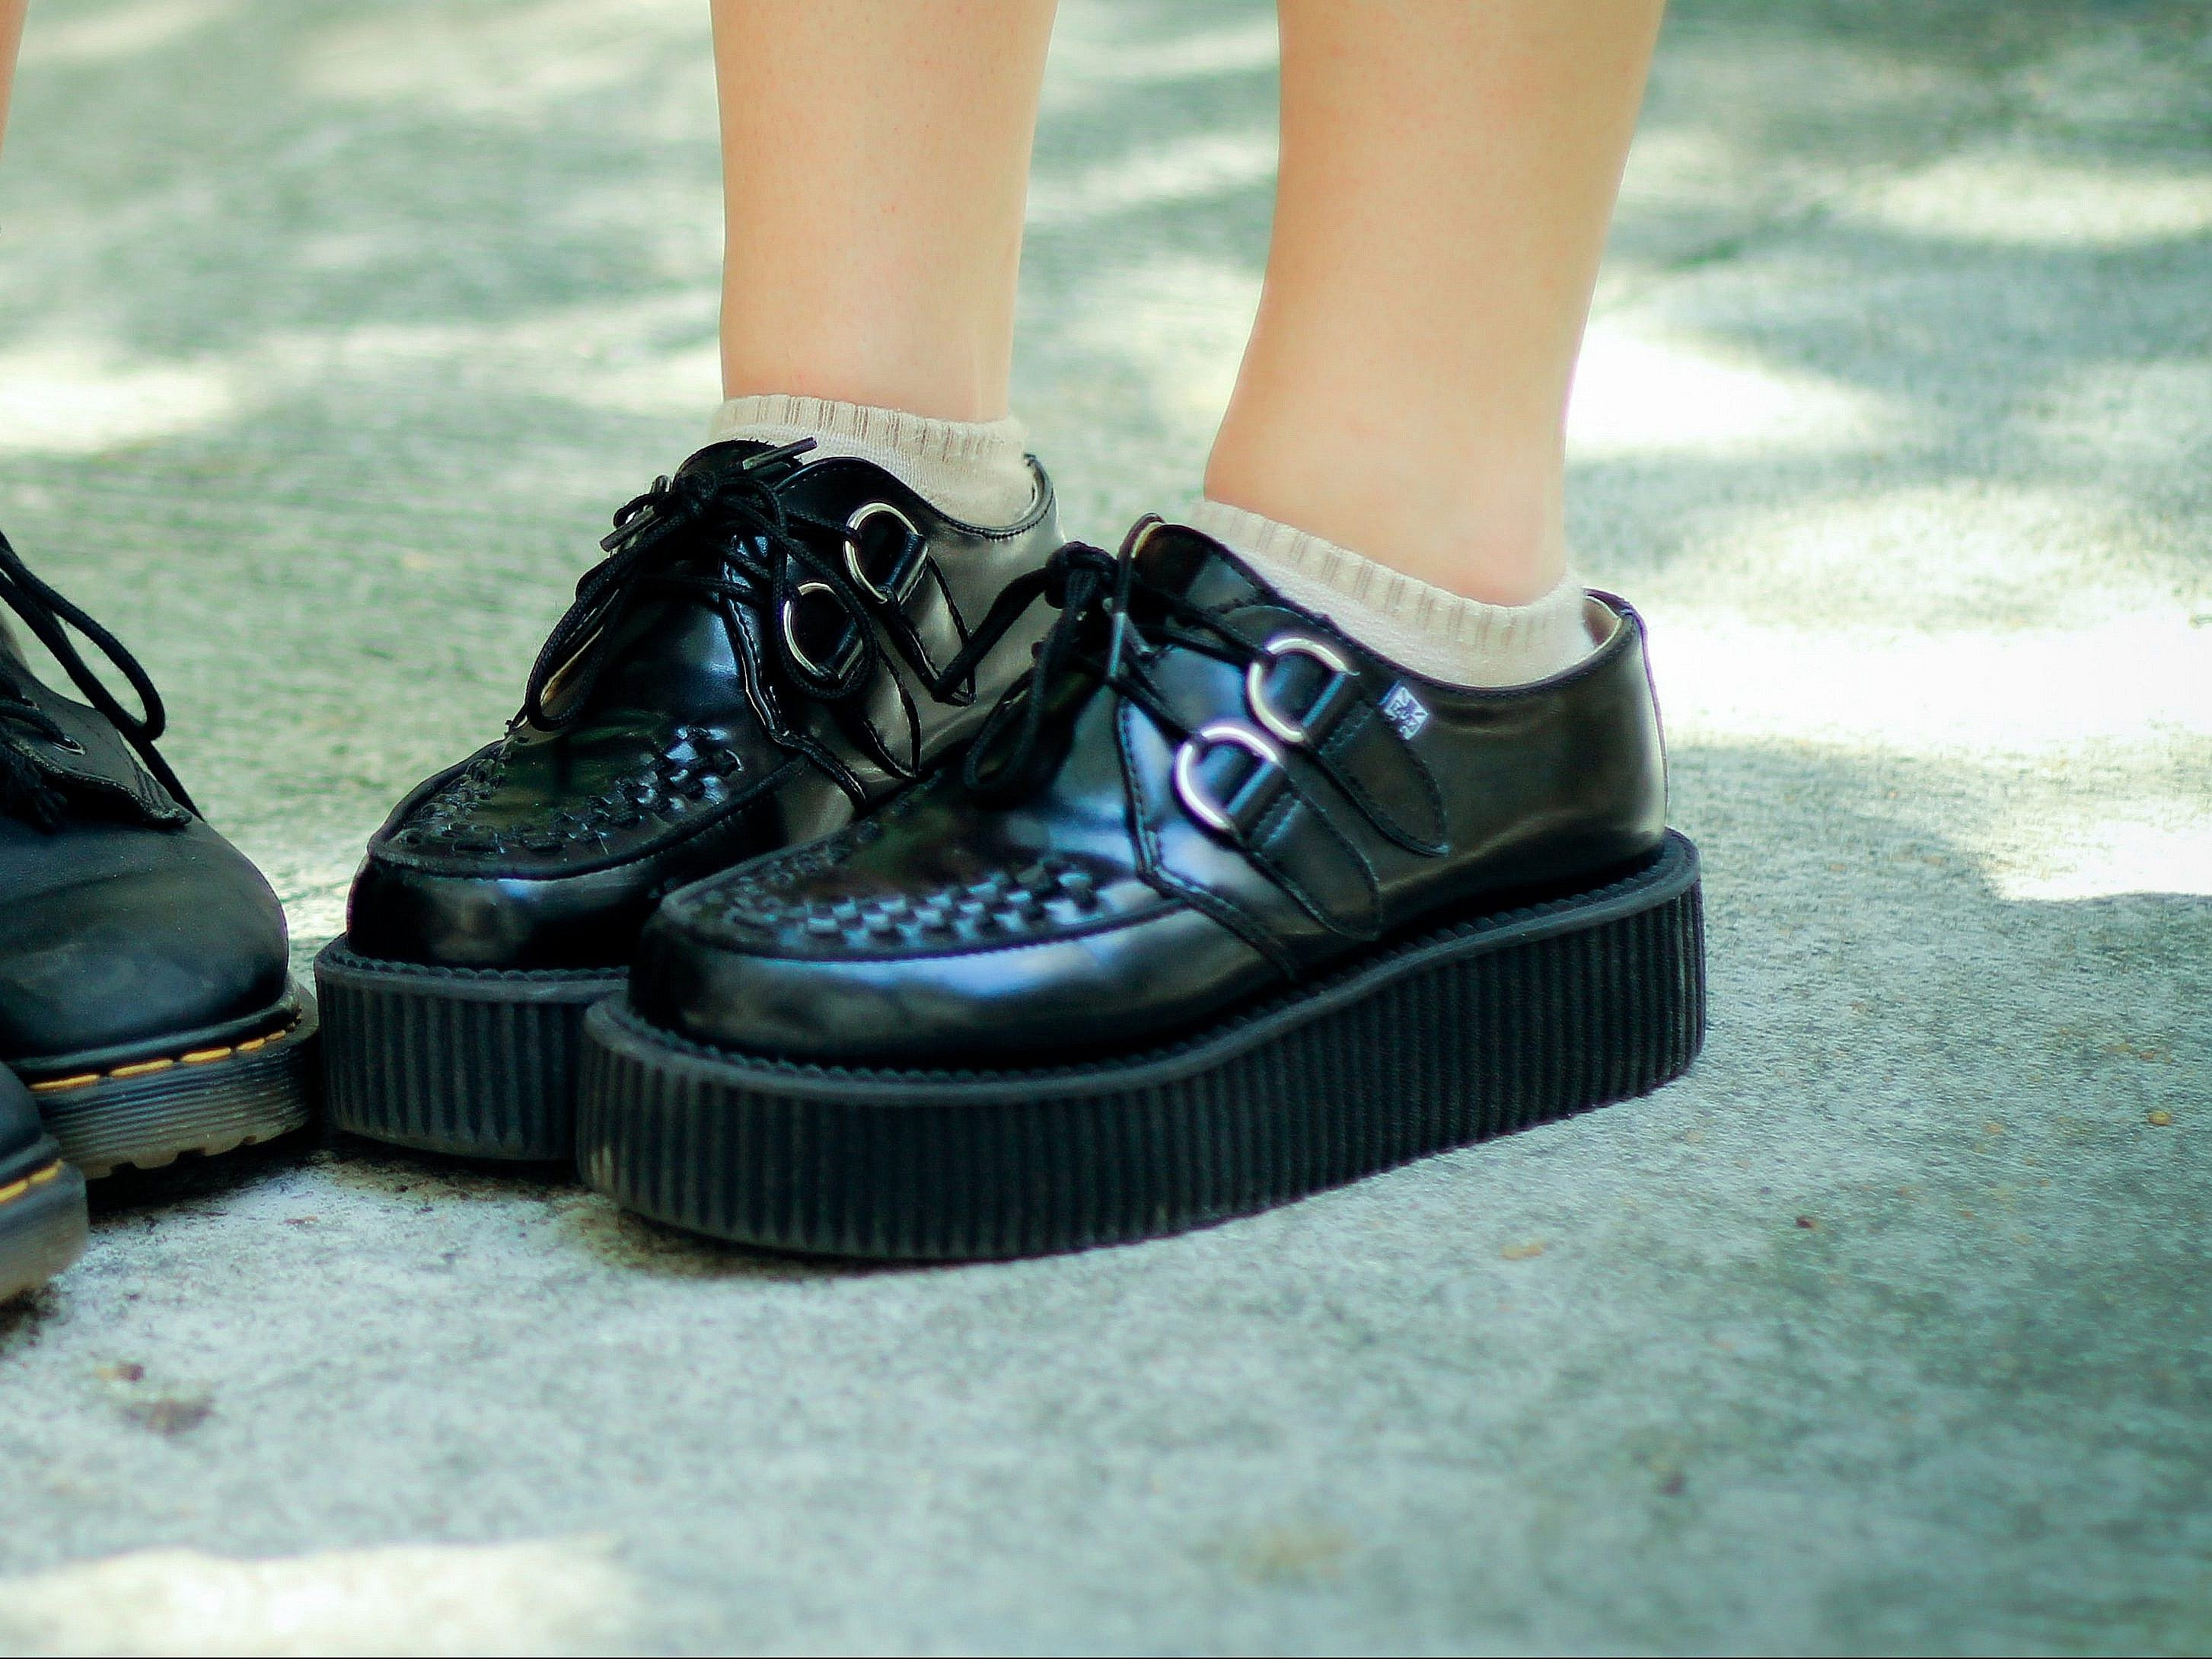 Rebel with a sole: The Underground creeper